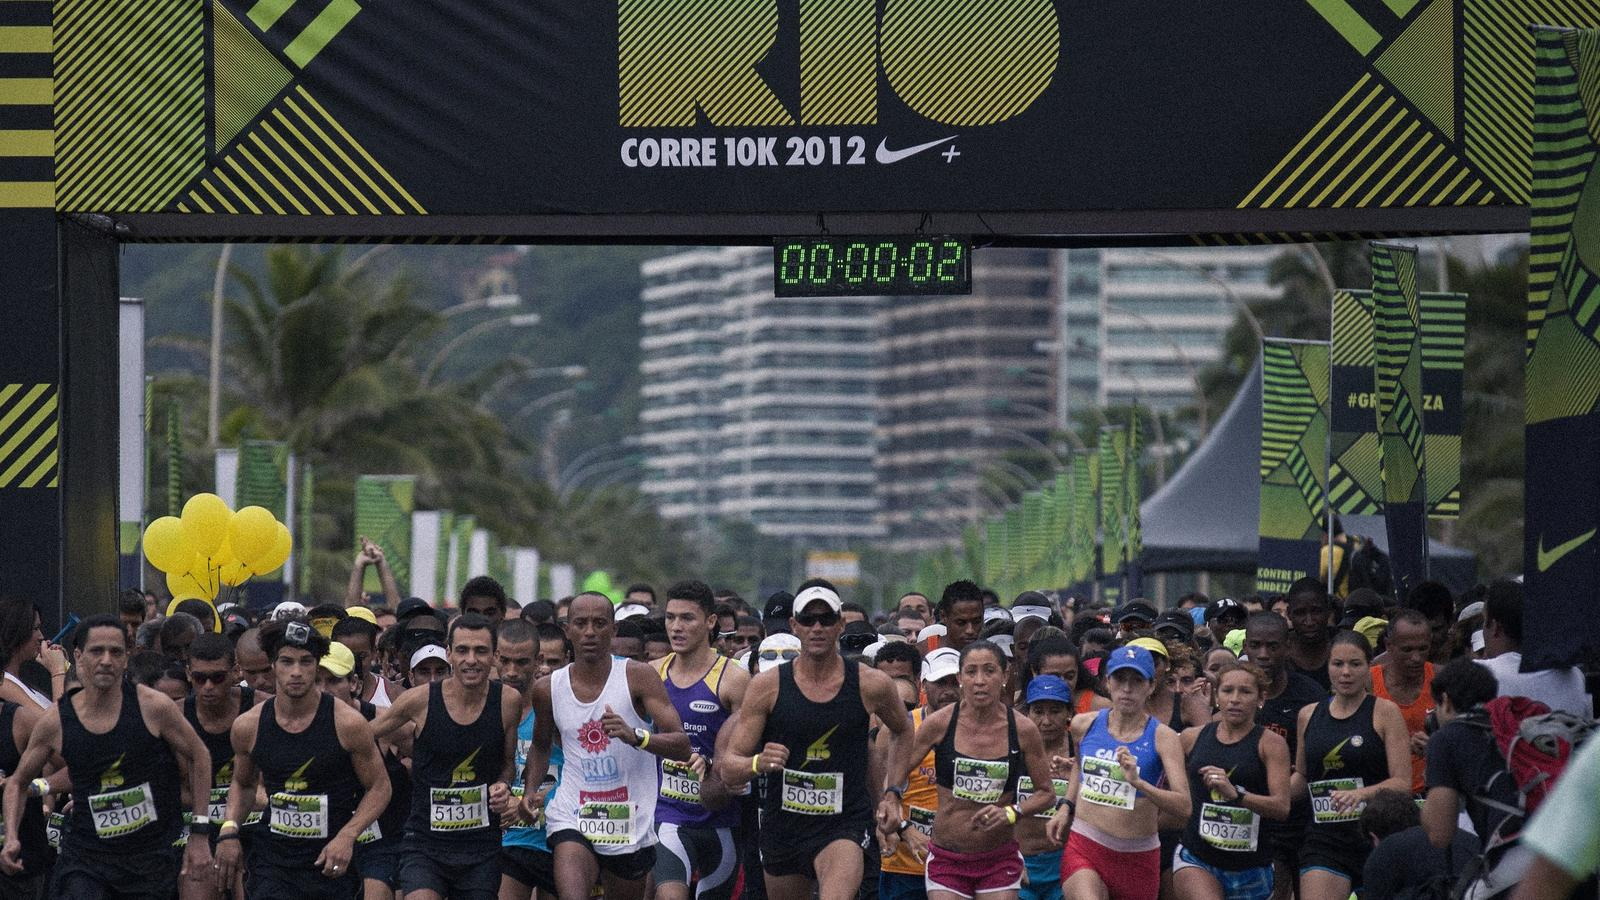 We_Run_Rio_10K-staring_line